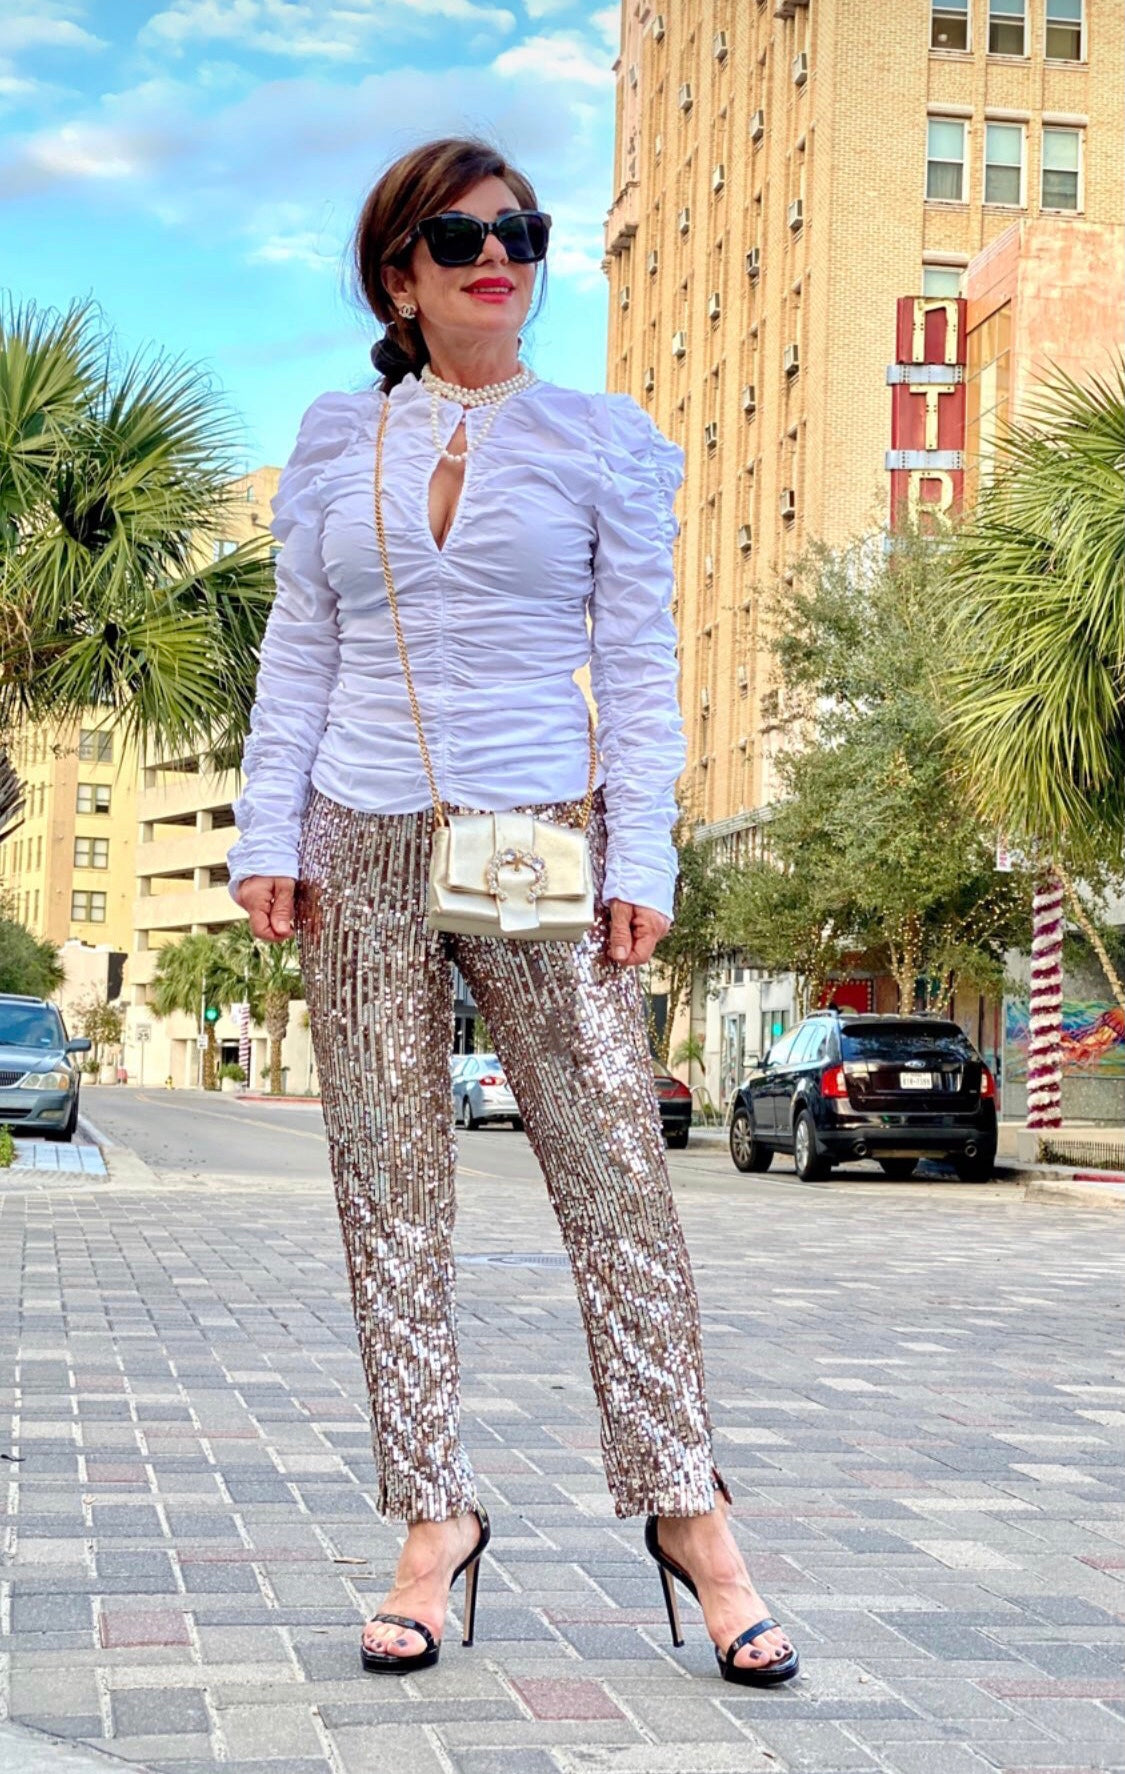 Brigitte Marie Foret in Zara White Rouched Blouse and Sequin Pants